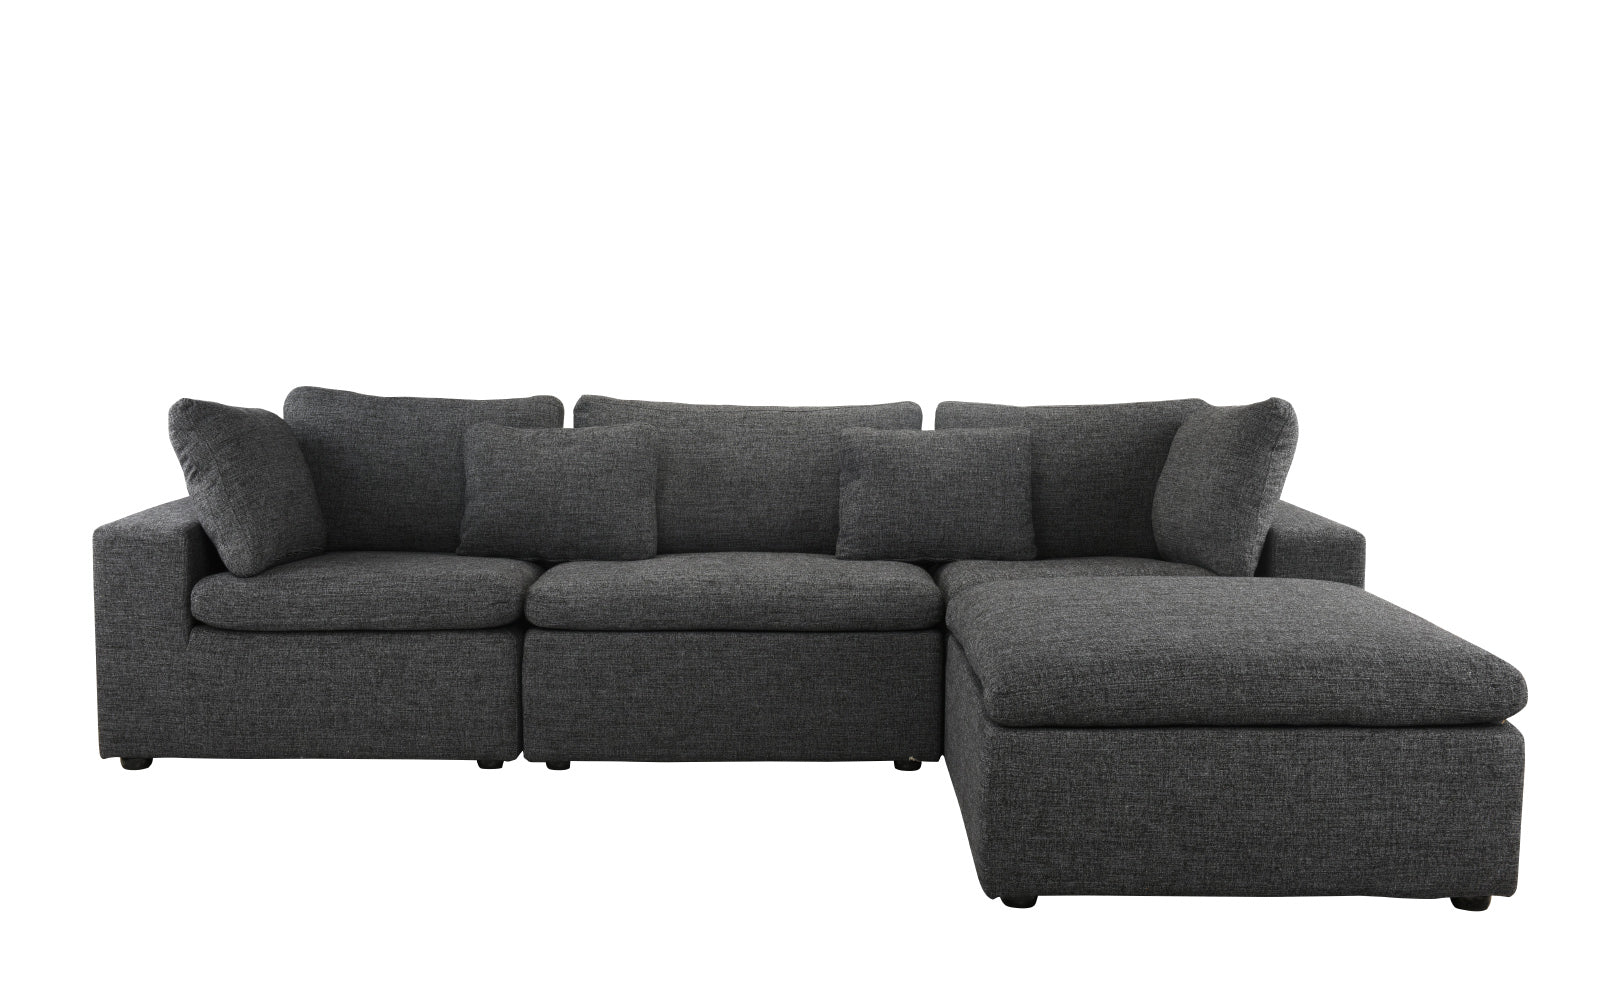 Sectional Sofa Chaise Image